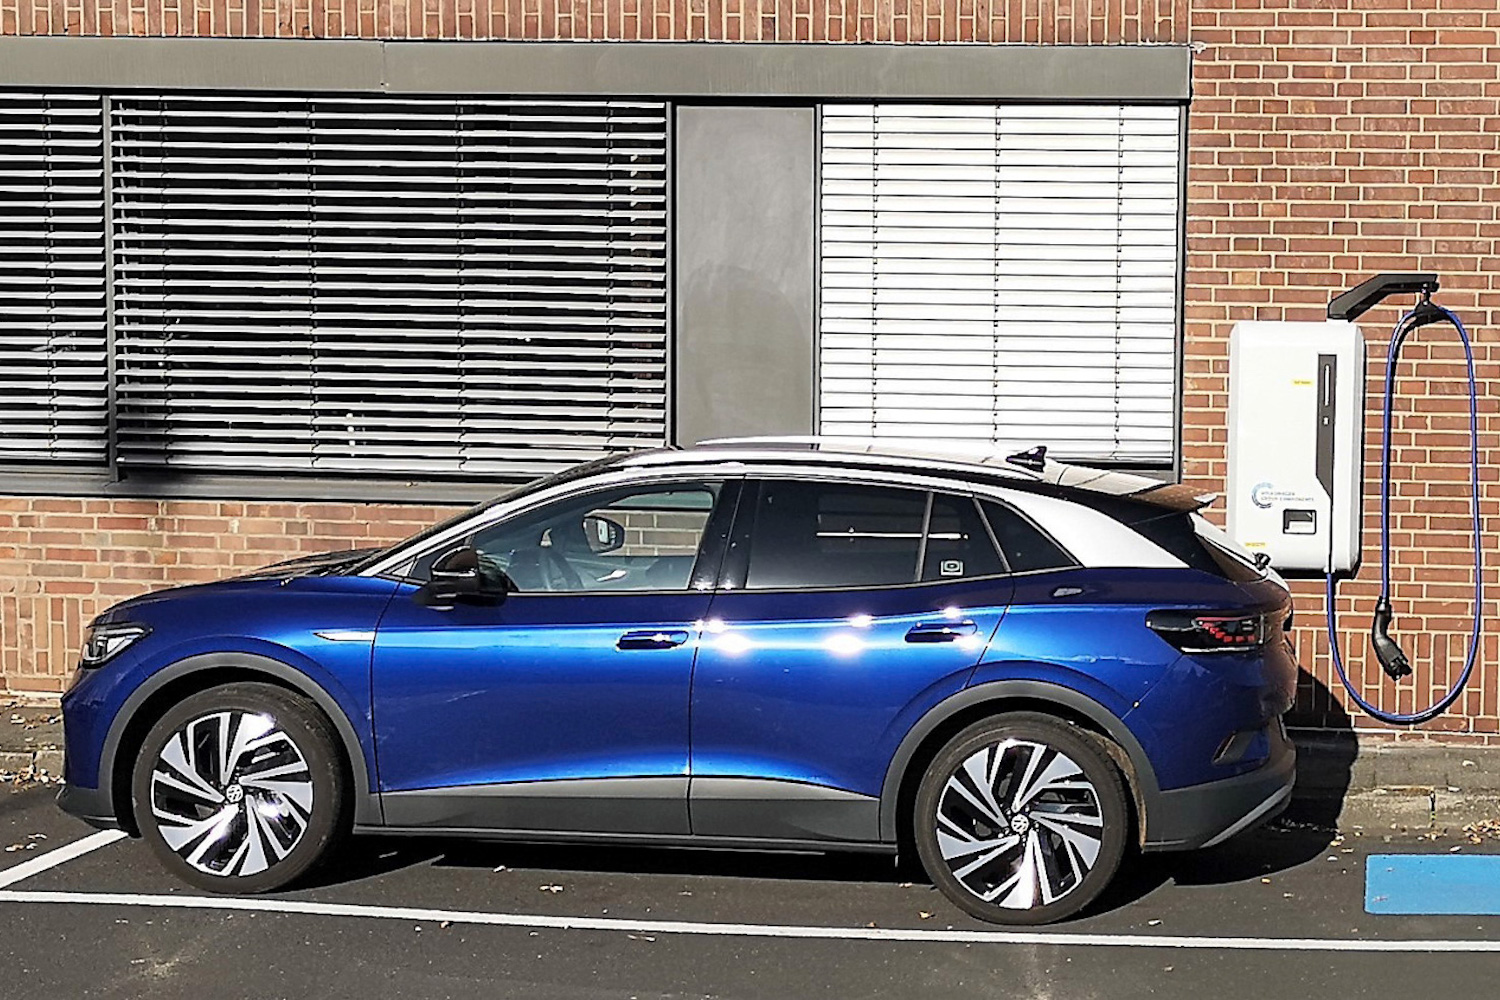 Car News | Volkswagen developing faster home charger | CompleteCar.ie